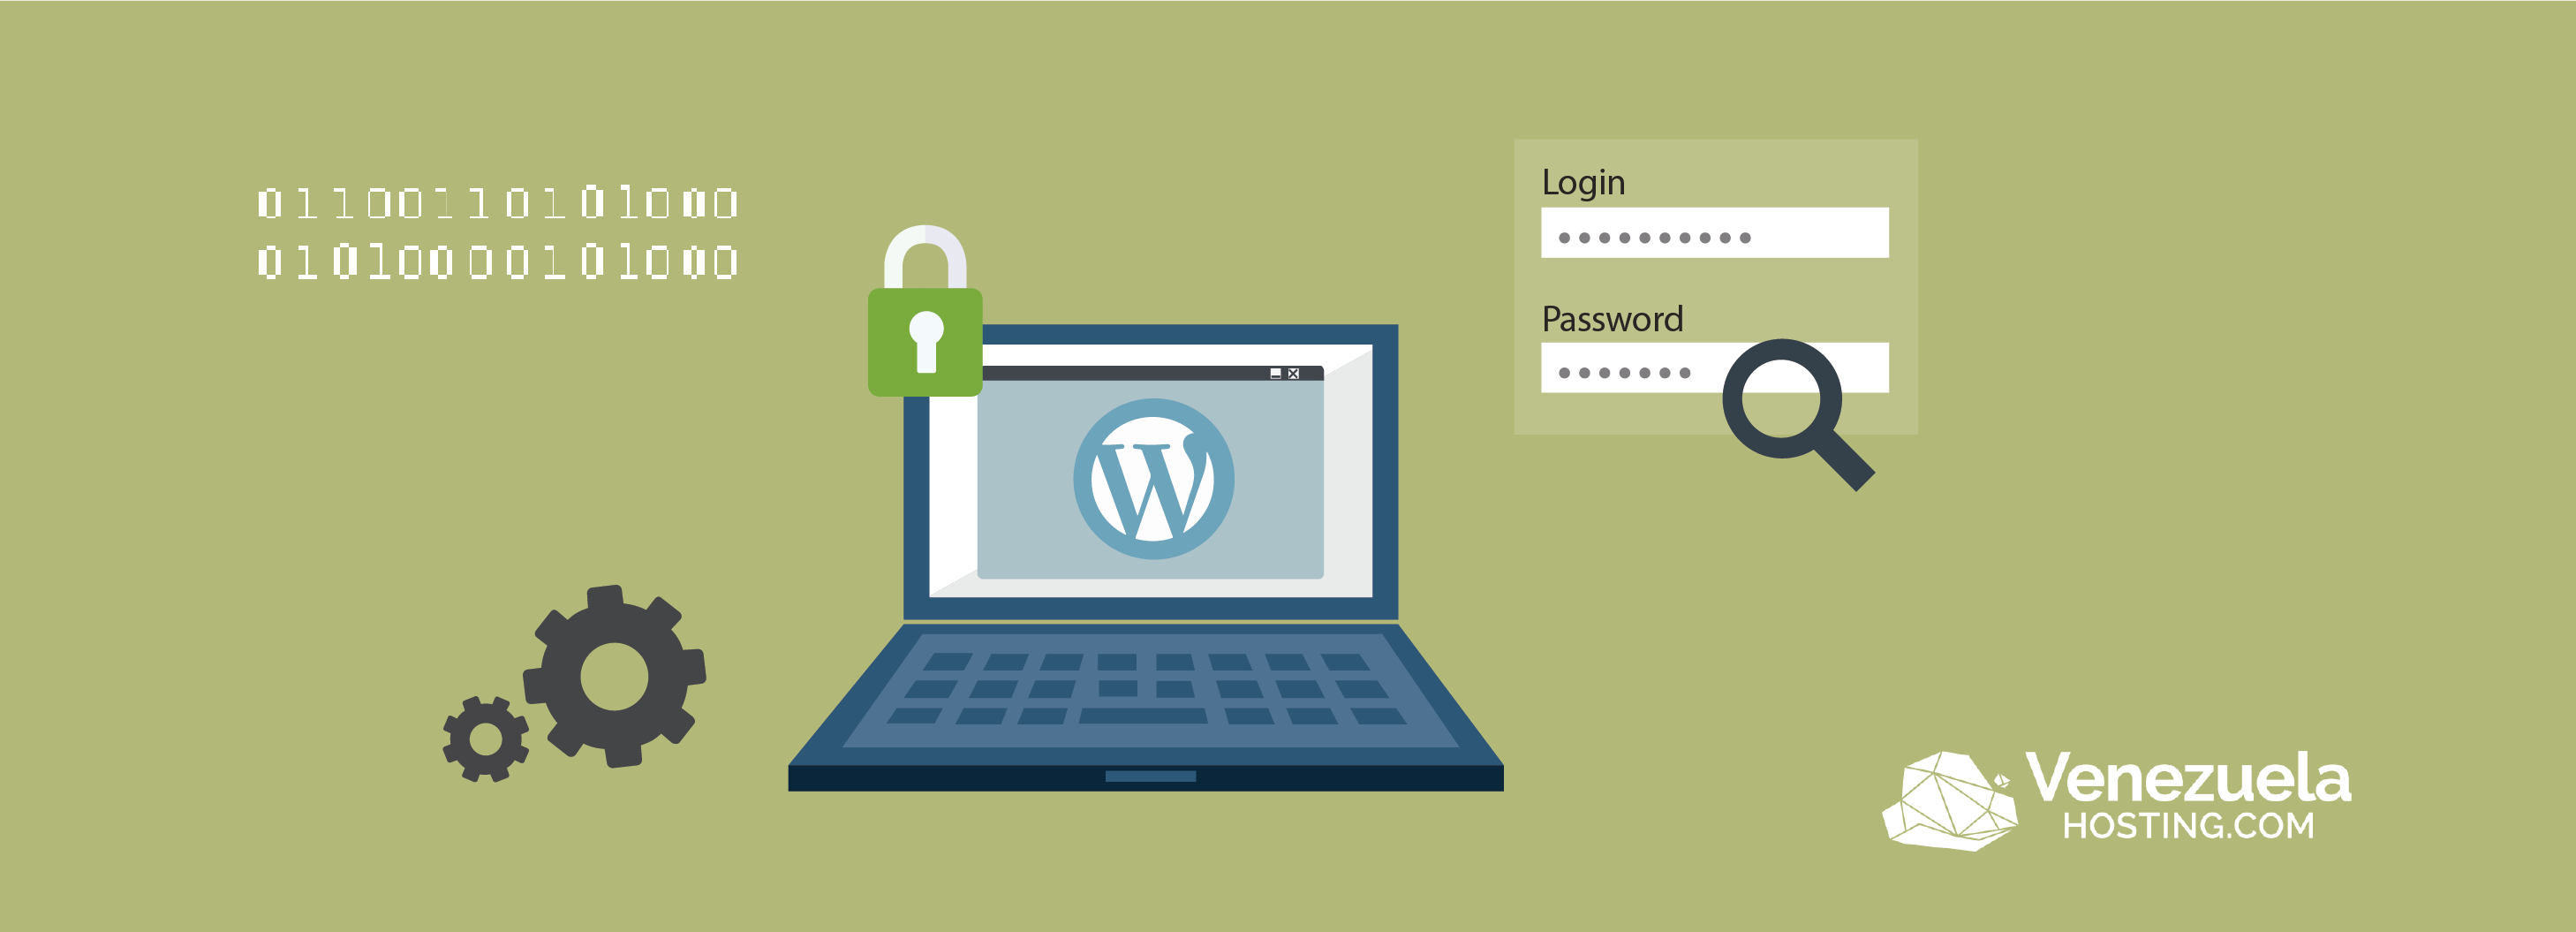 tips de seguridad wordpress